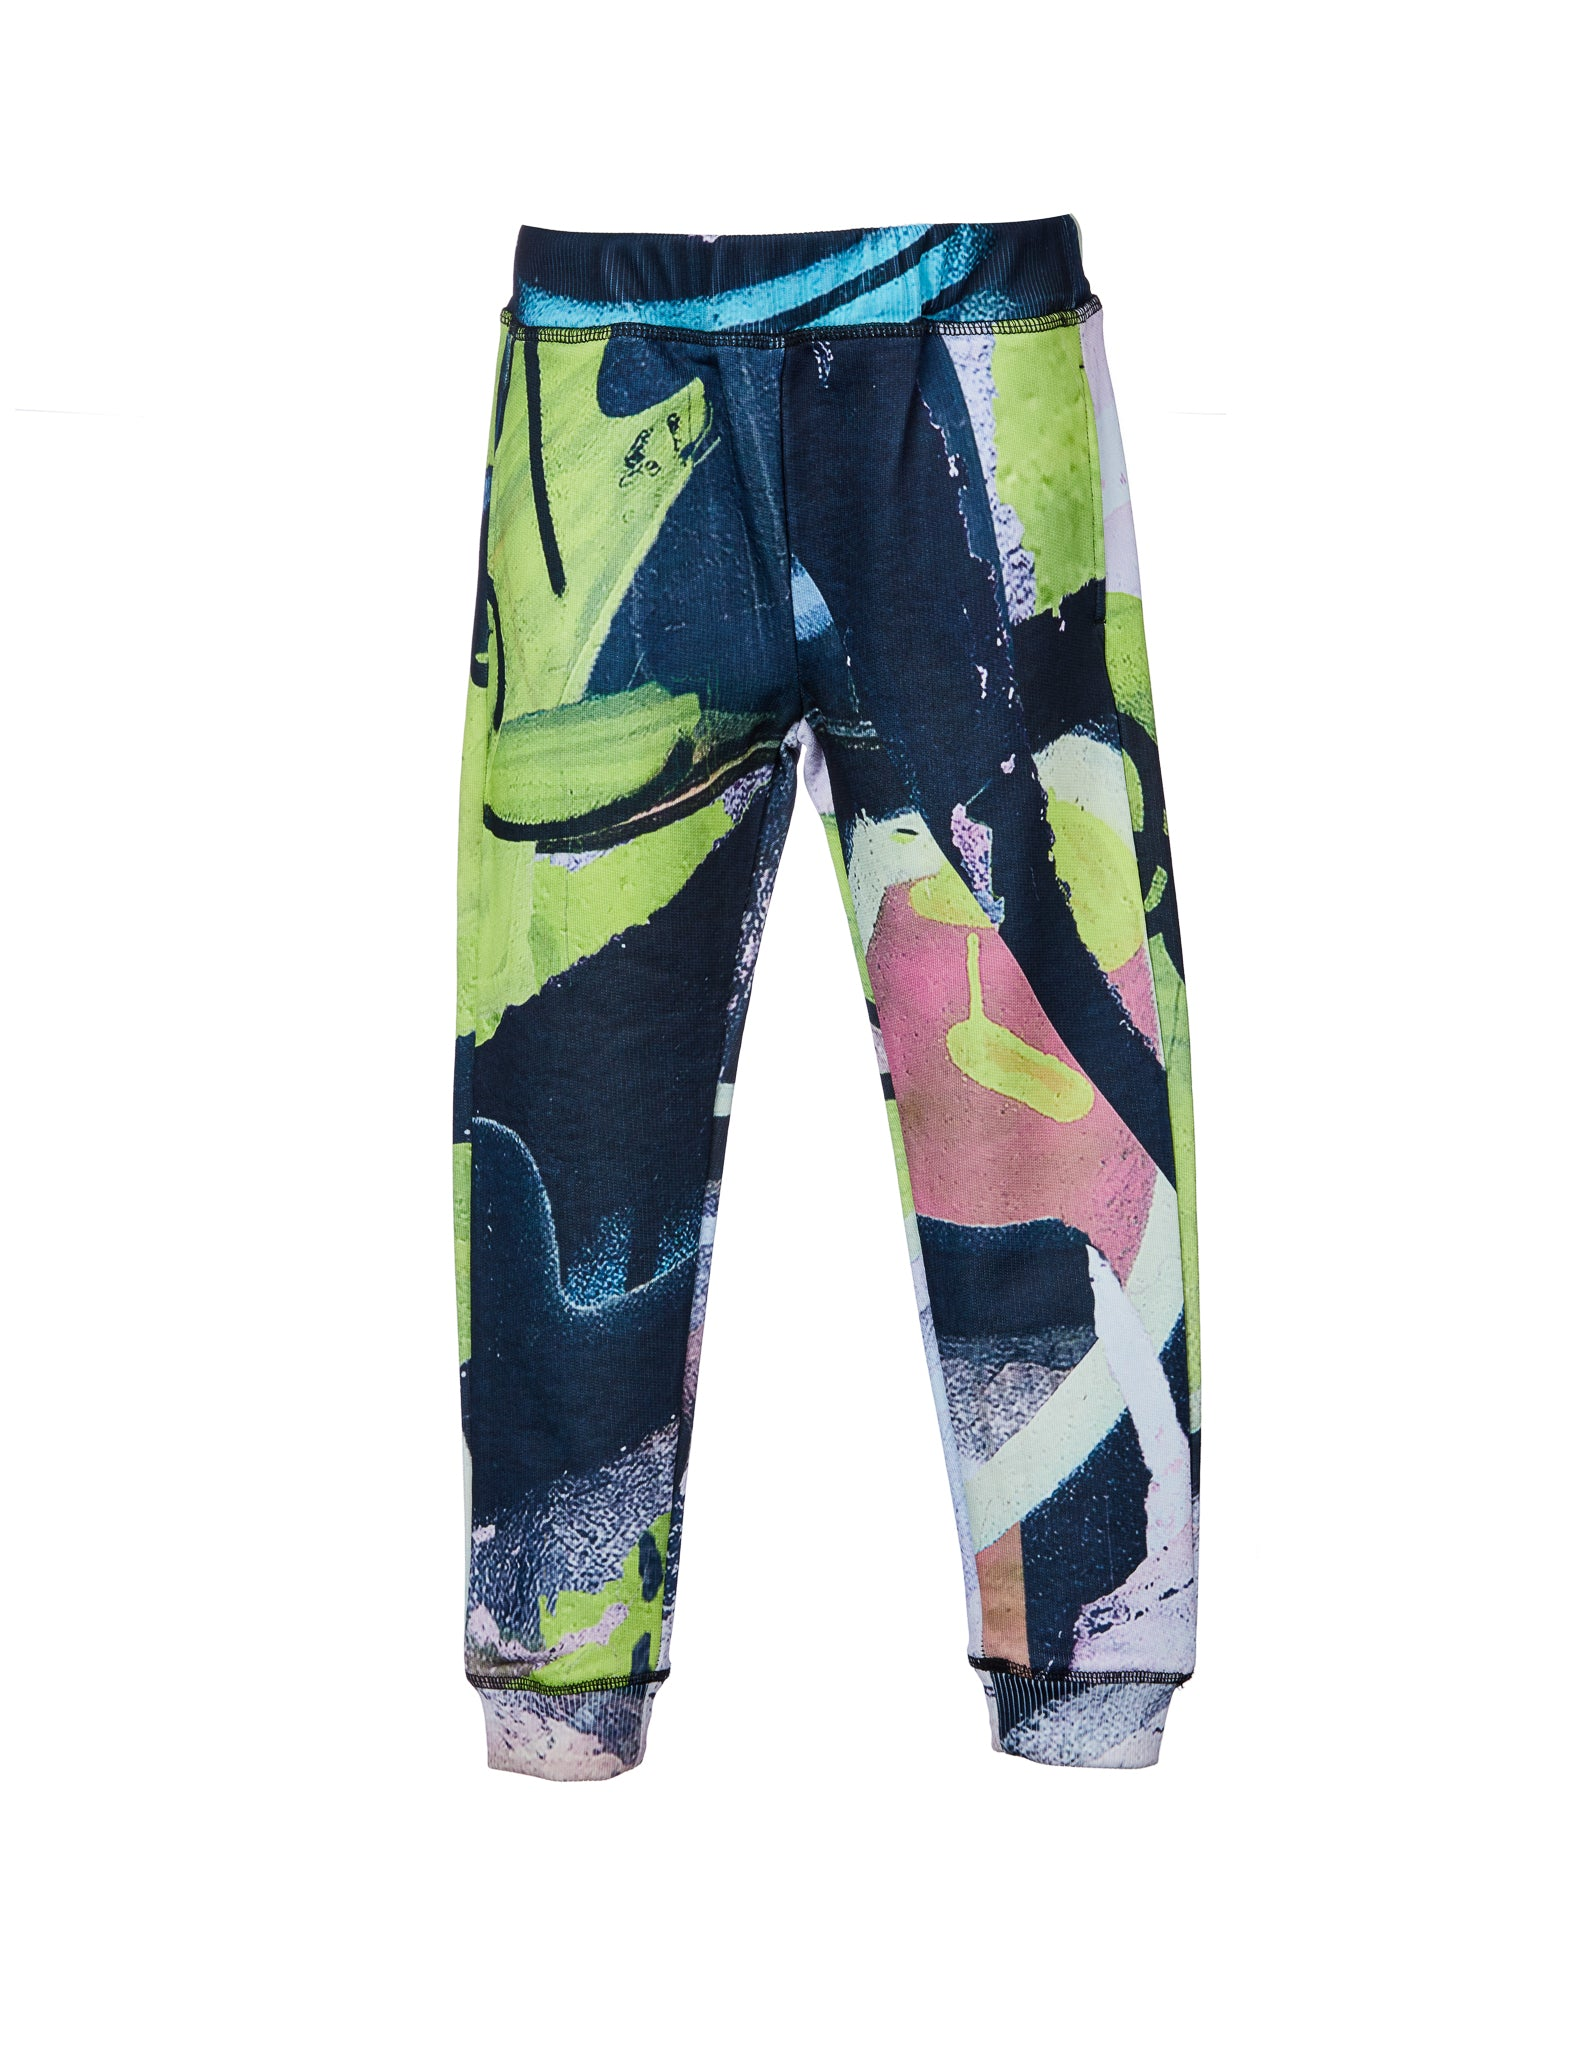 M'A KIDS ELASTIC CUFF TROUSERS IN PASTEL PRINT